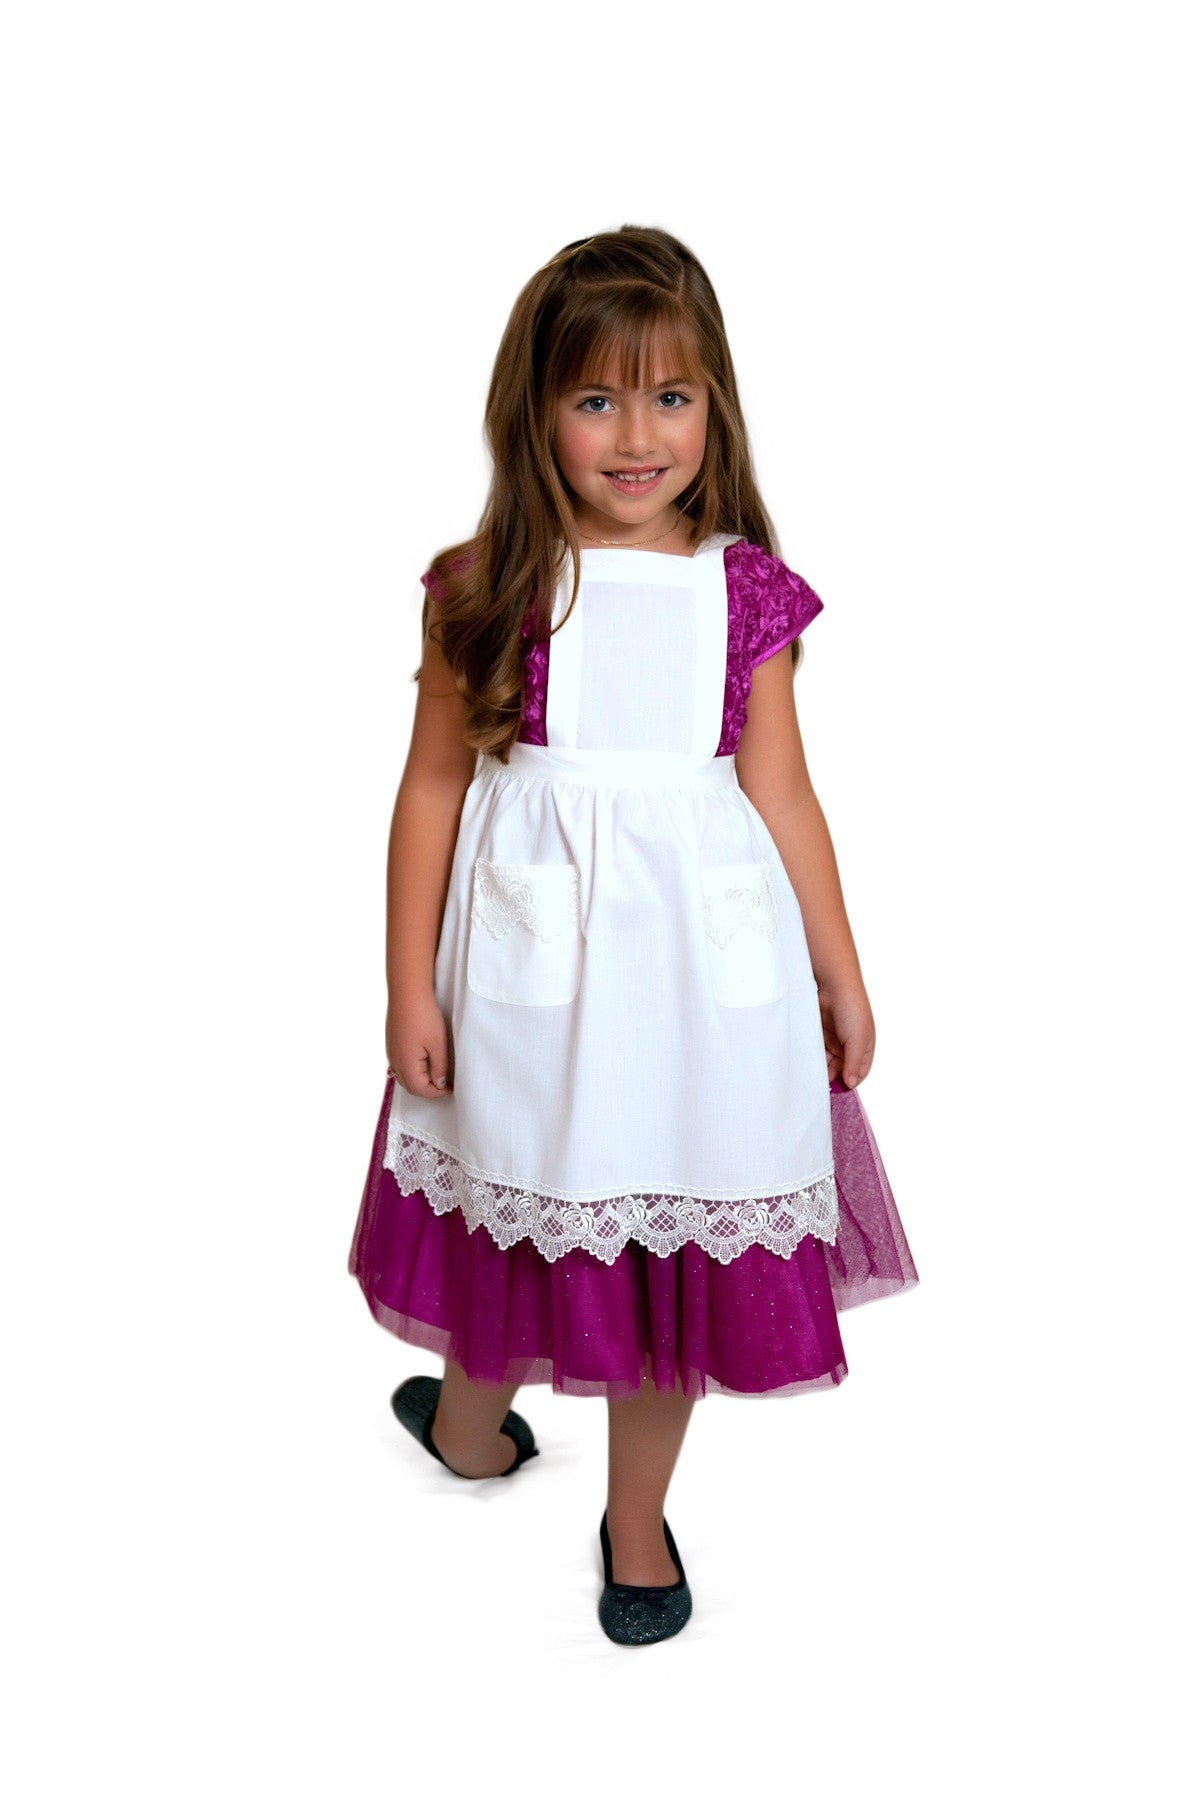 White apron girl -  Deluxe Girls White Lace Full Apron Ages 2 8